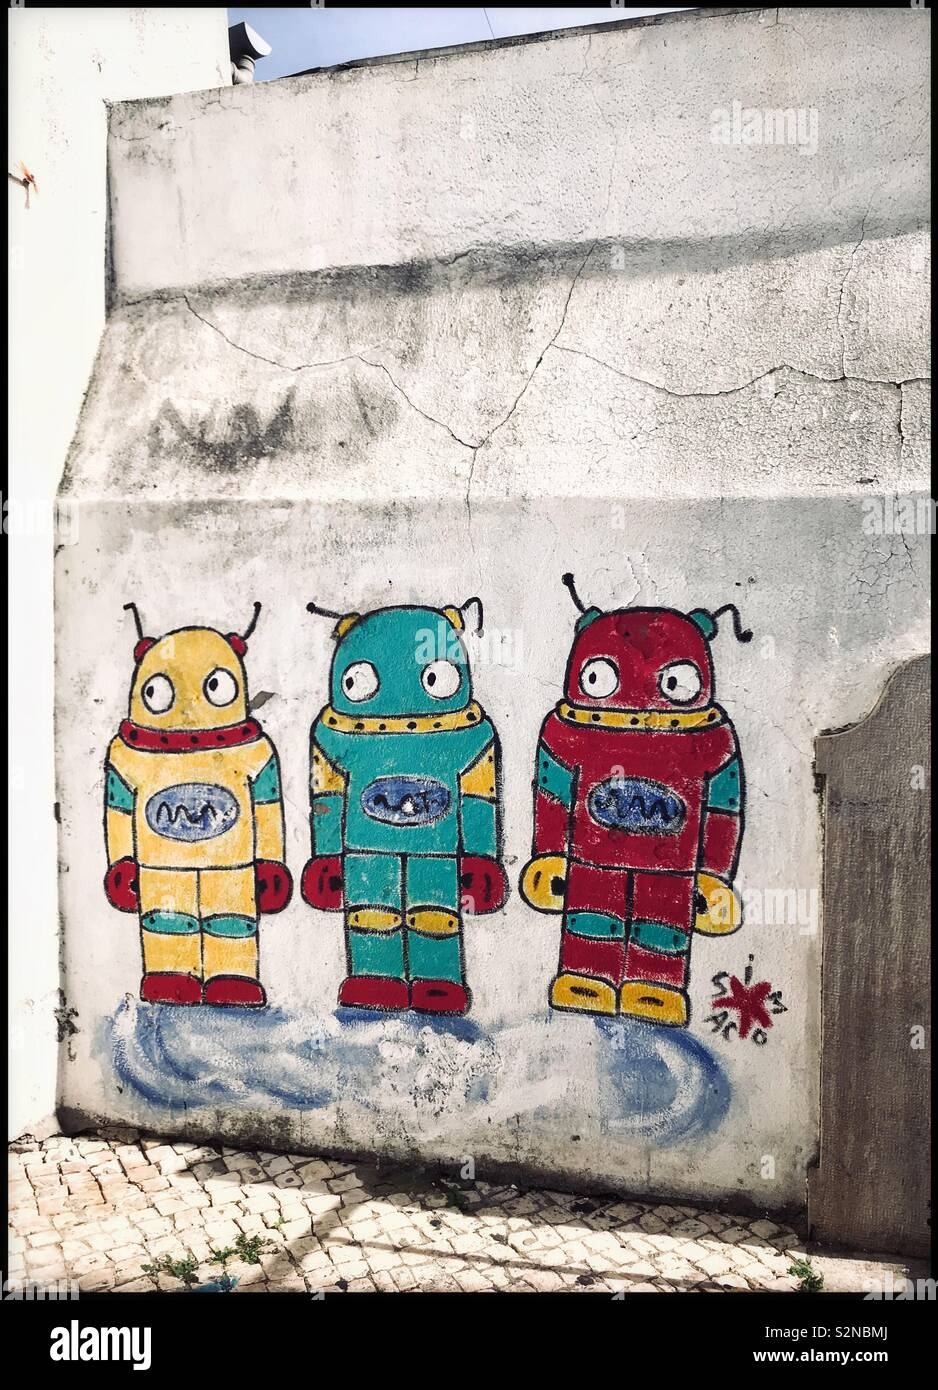 Graffiti or Art? Three extra-terrestrials painted onto a grimy white wall are standing in front of you. What are they looking at? What are they thinking? Photo Credit - © COLIN HOSKINS. - Stock Image